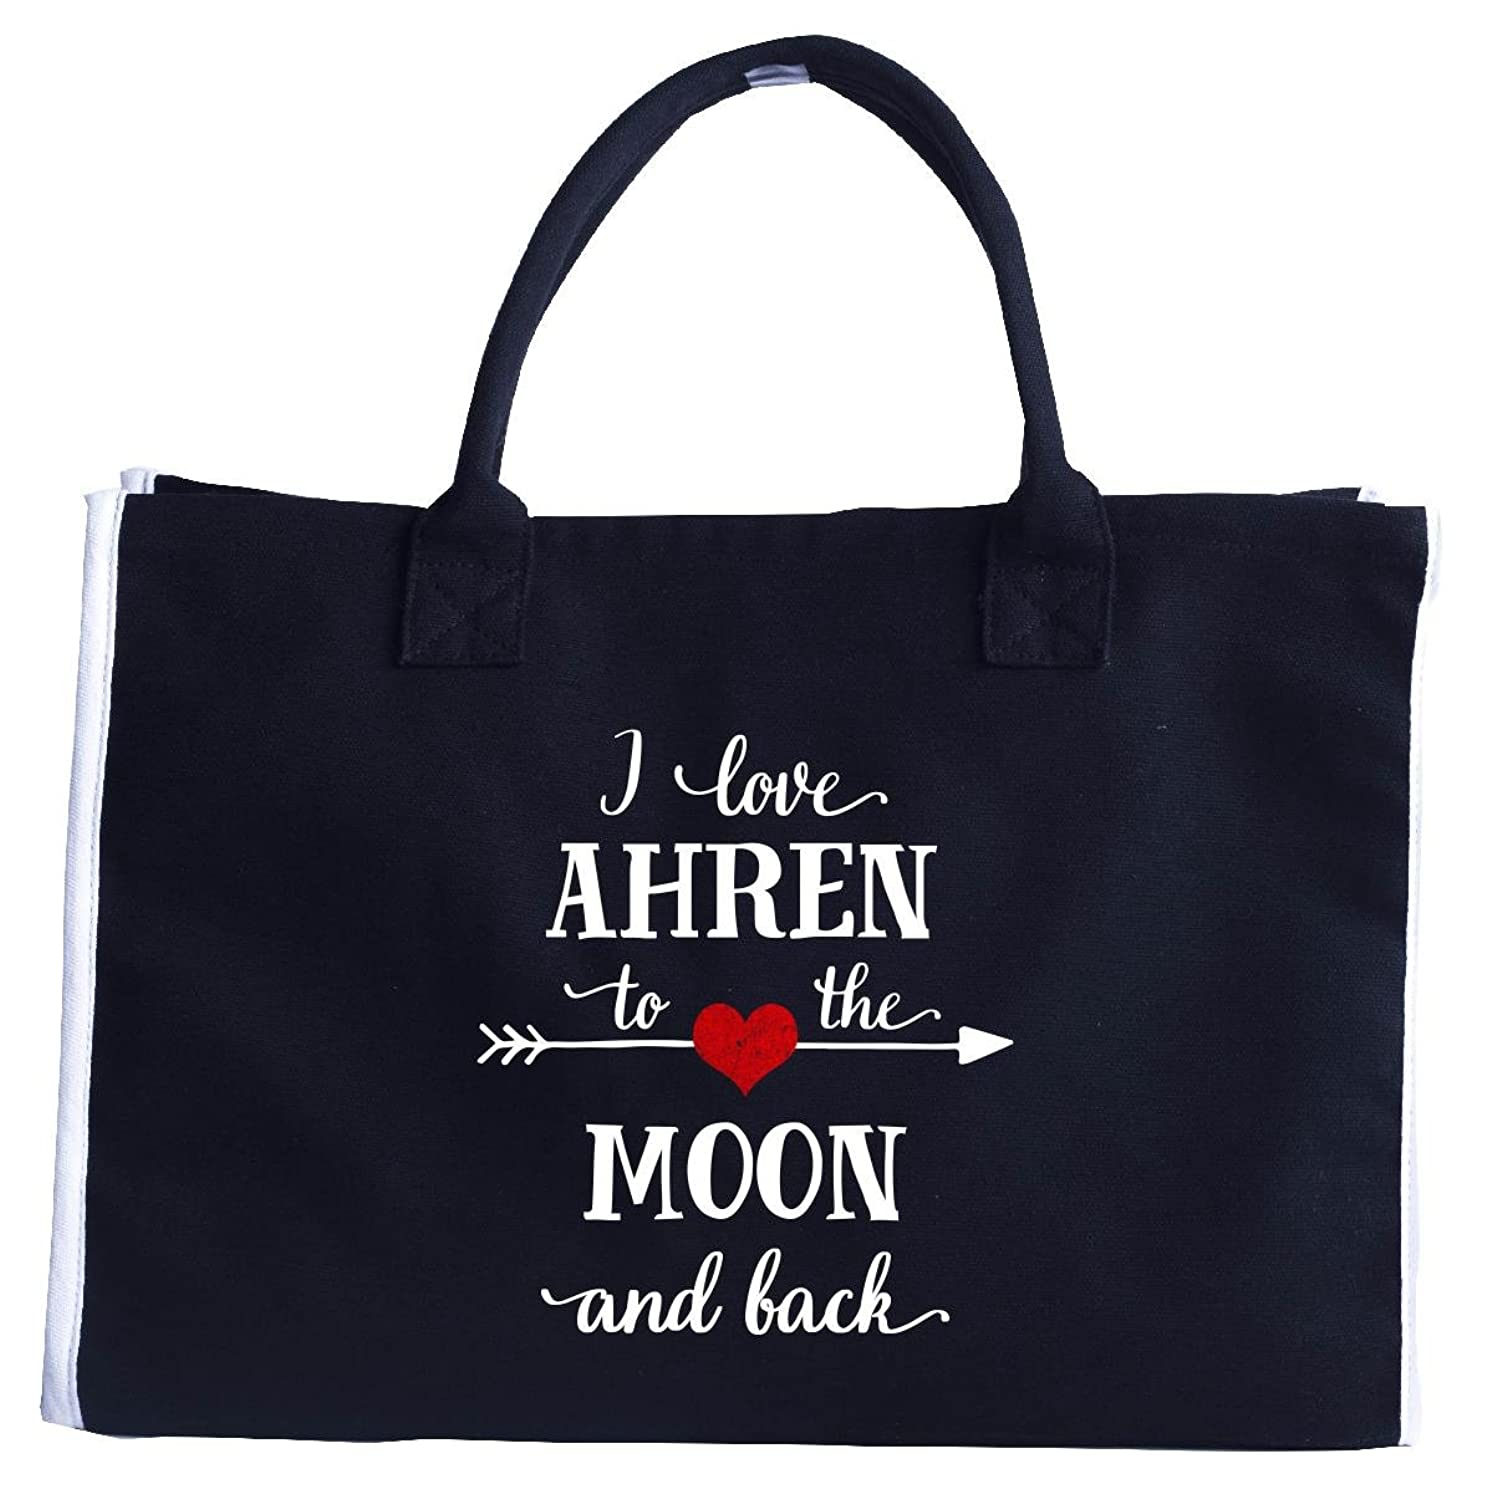 I Love Ahren To The Moon And Back.gift For Girlfriend - Fashion Tote Bag